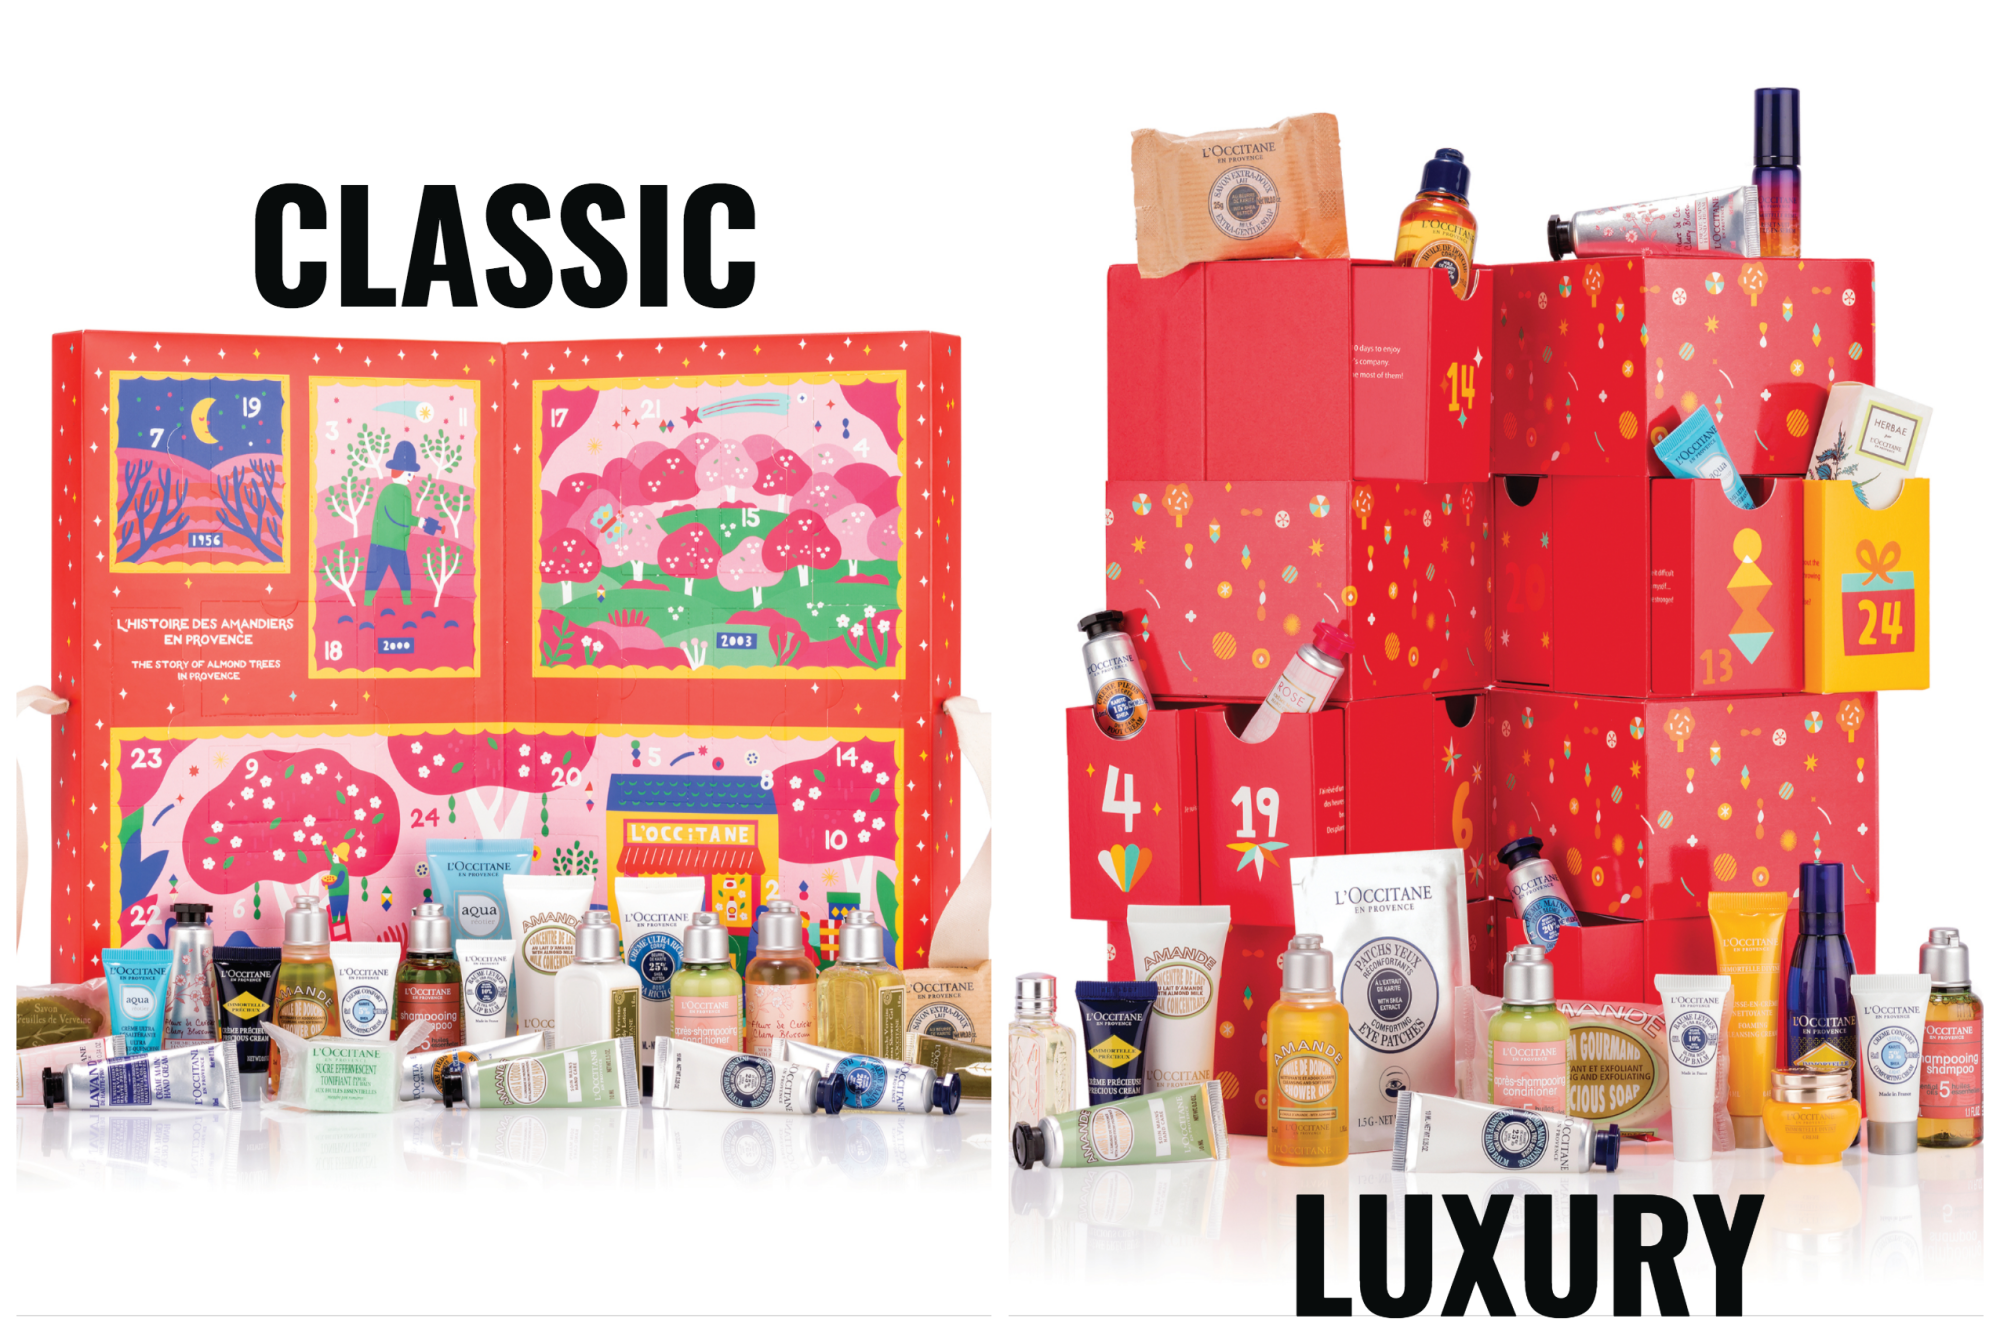 Loccitane beauty advent calendar 2019 - The LDN Diaries